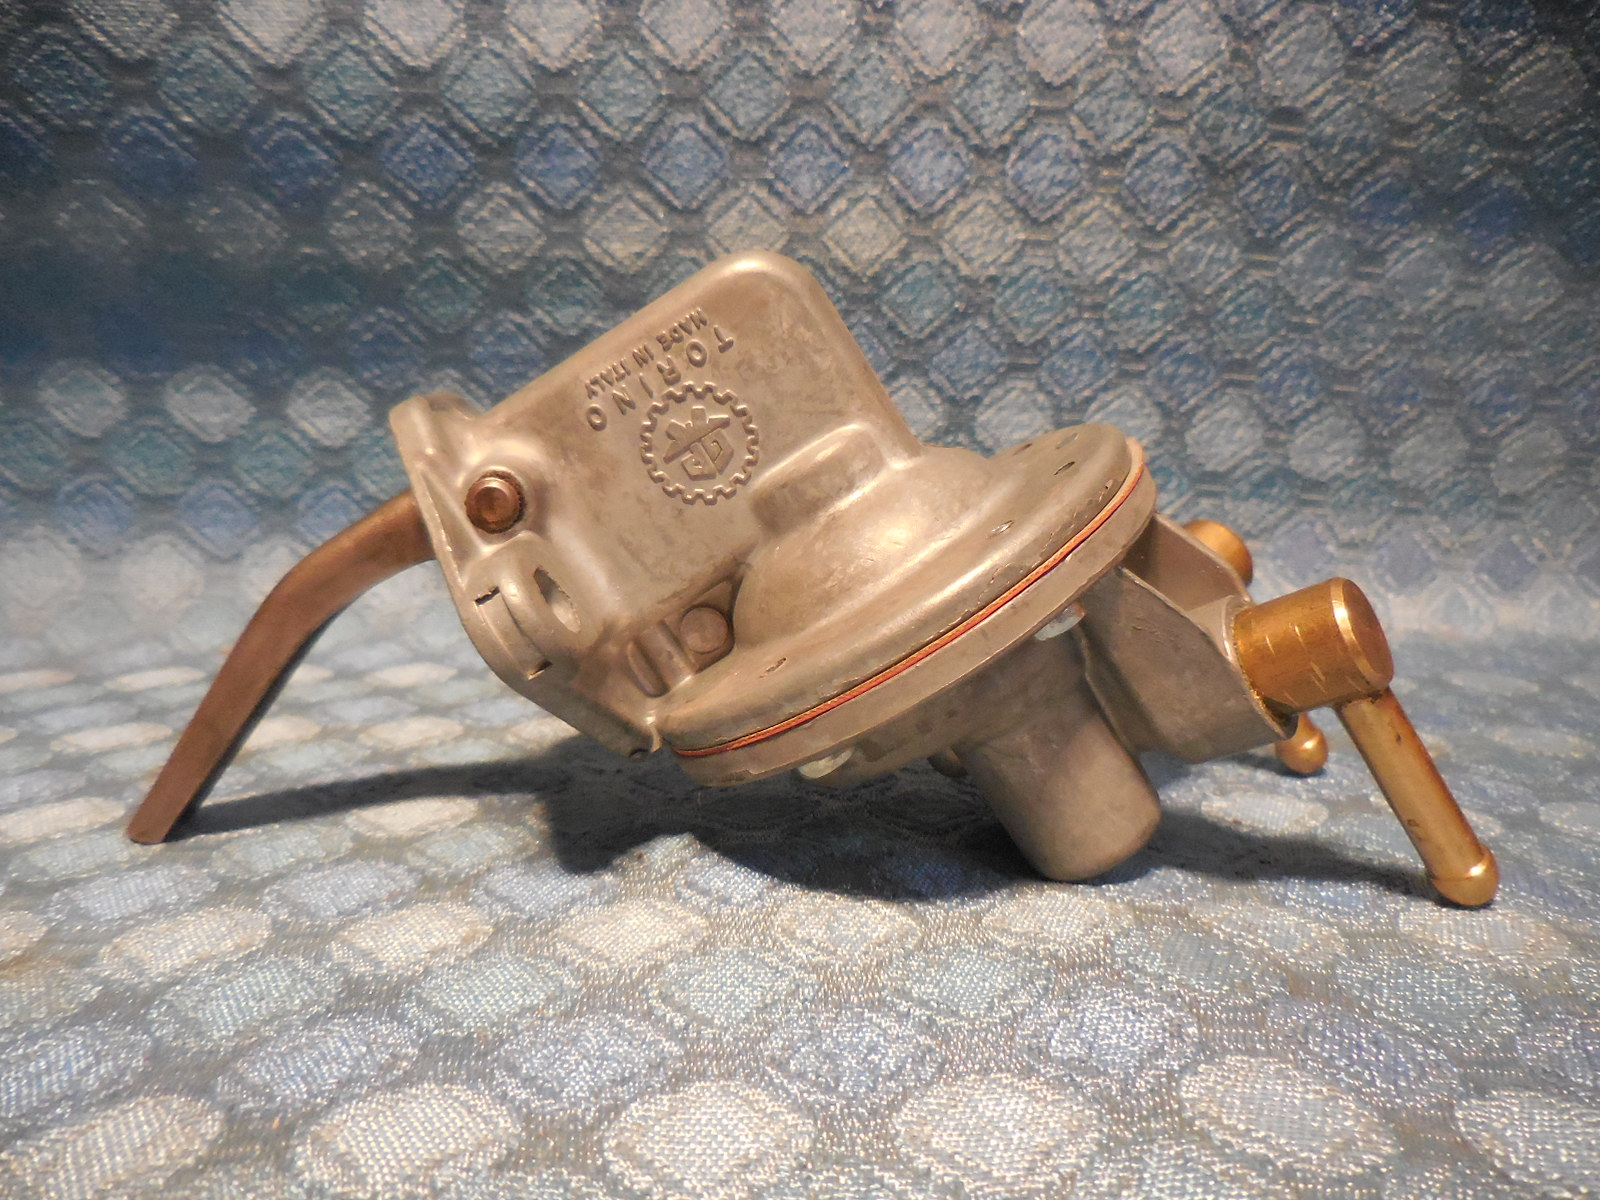 1974 1978 Datsun Nissan Nors Fuel Pump 41476 1975 76 1977 See Detailed Ad